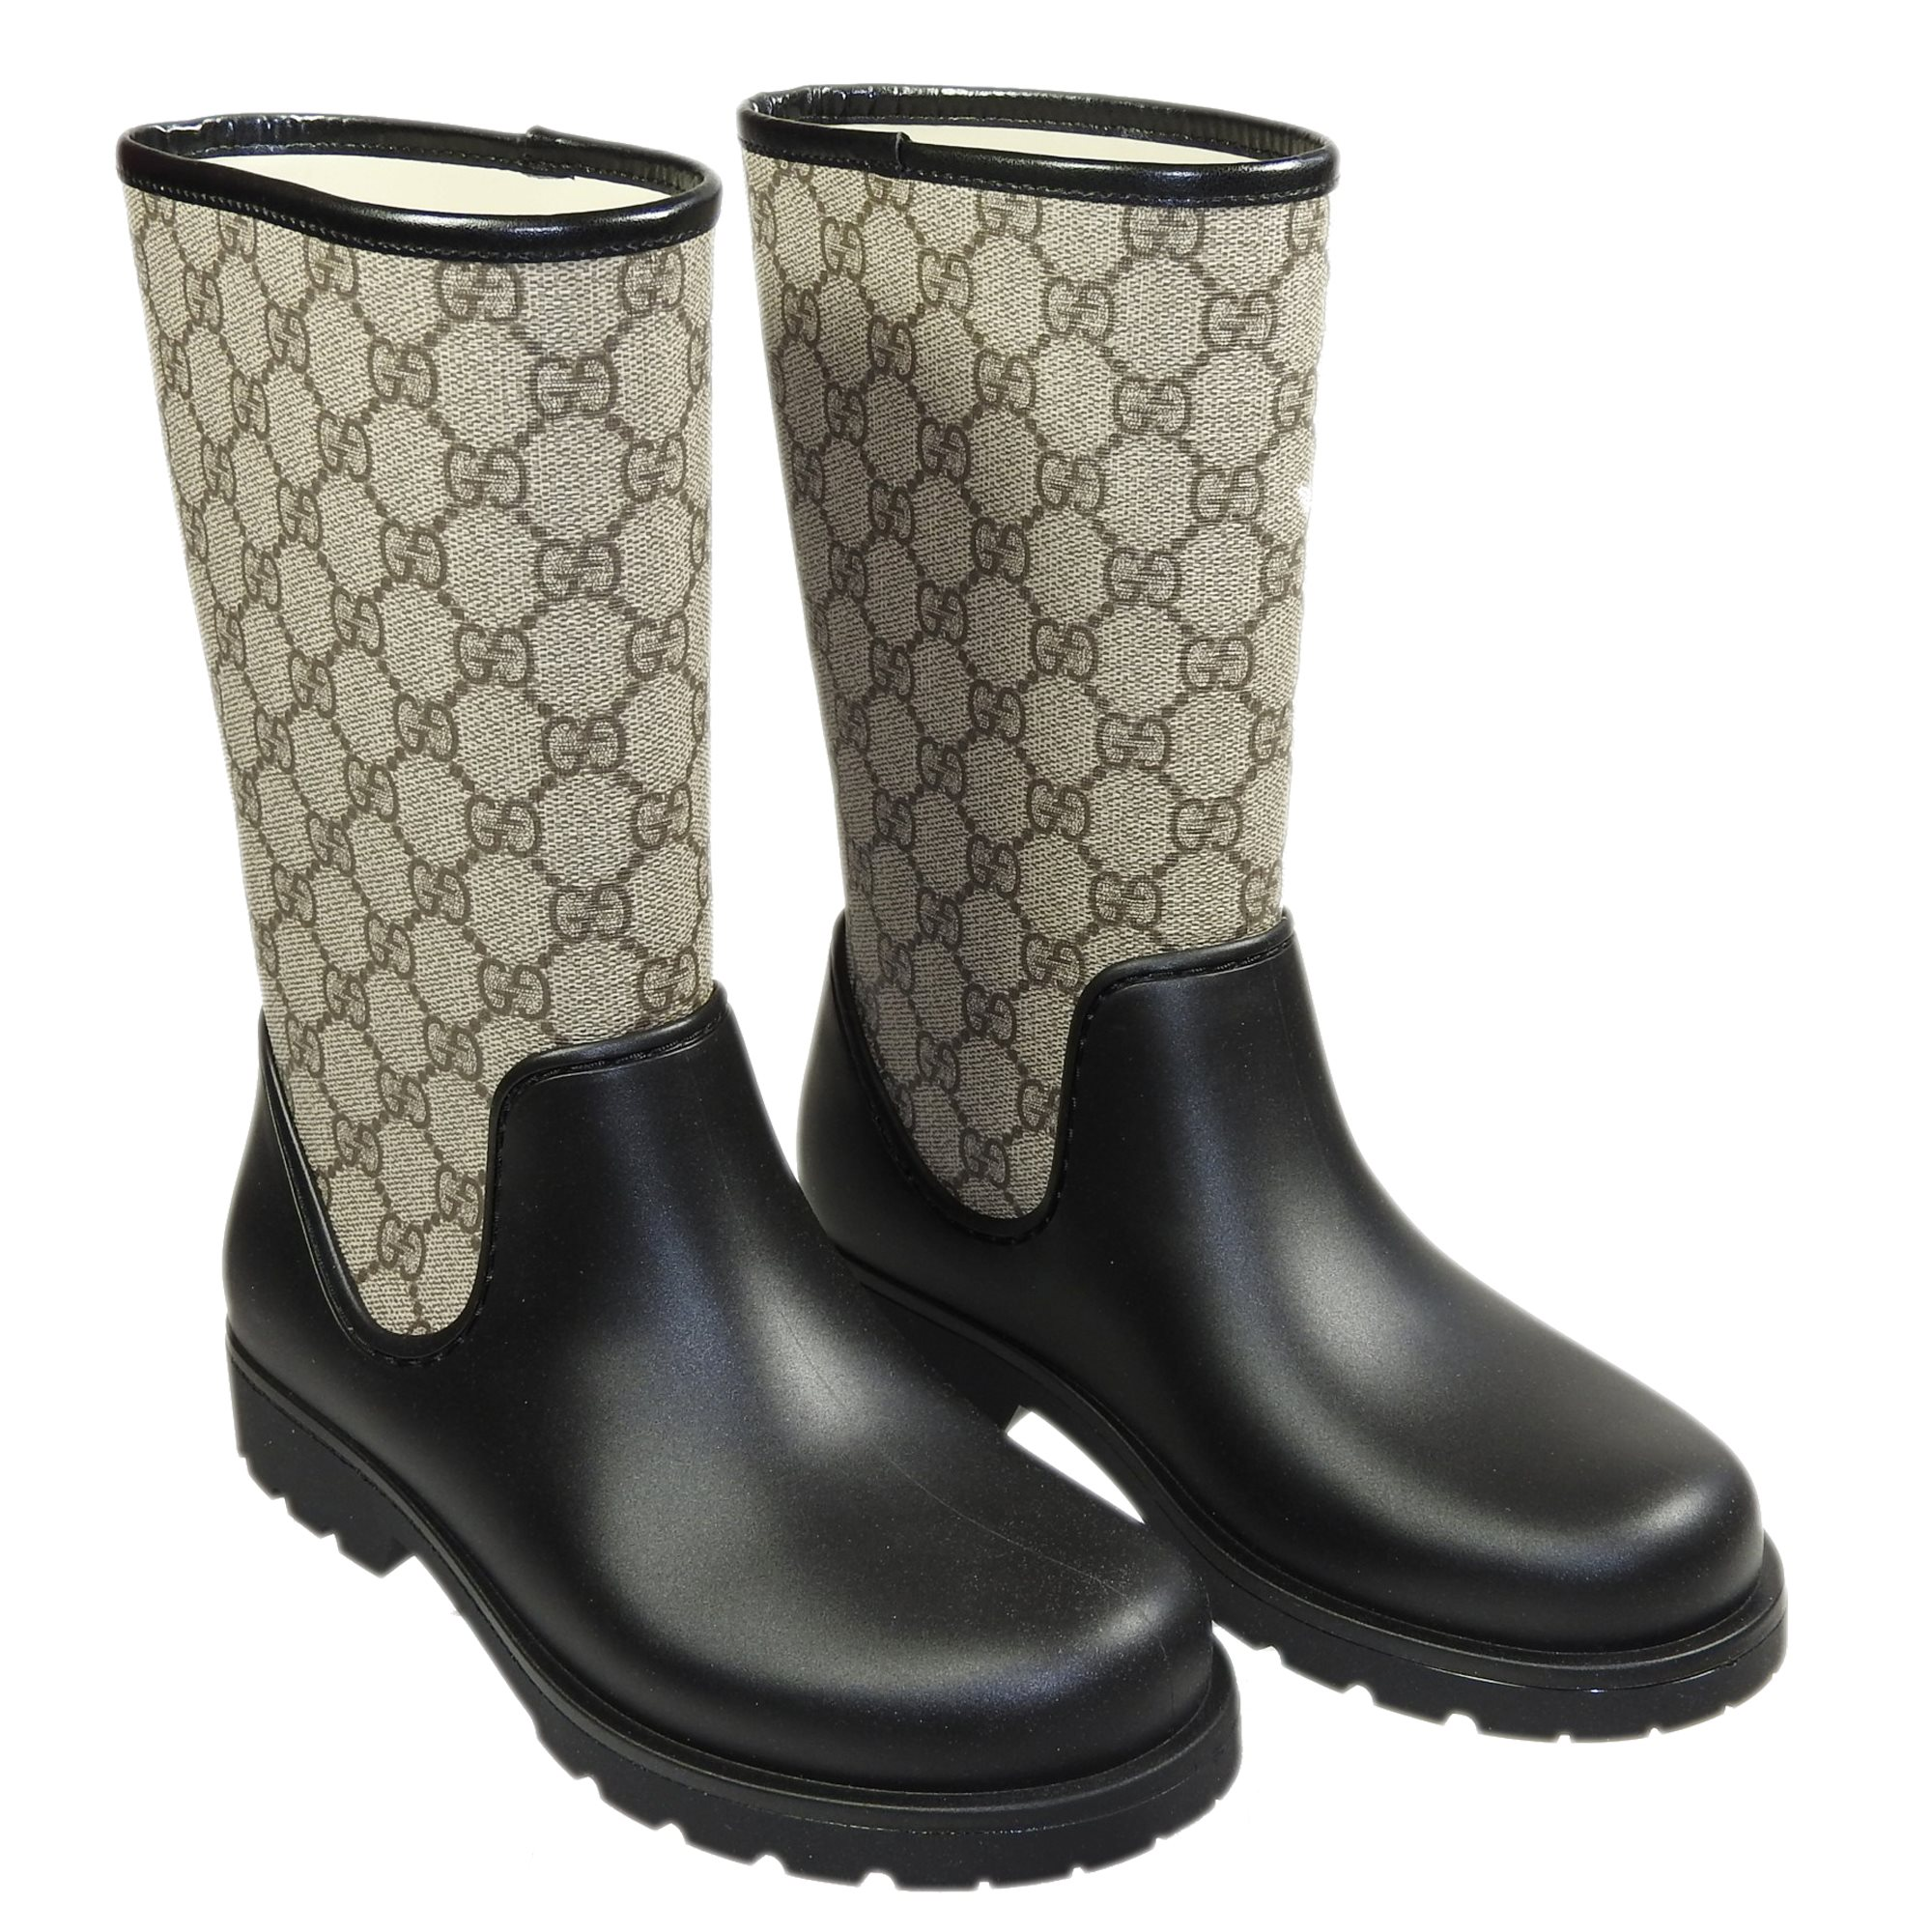 ed30ff2ba36 Producten - Gucci rubberlaars logo /zwart - La Boite - Kids fashion & shoes